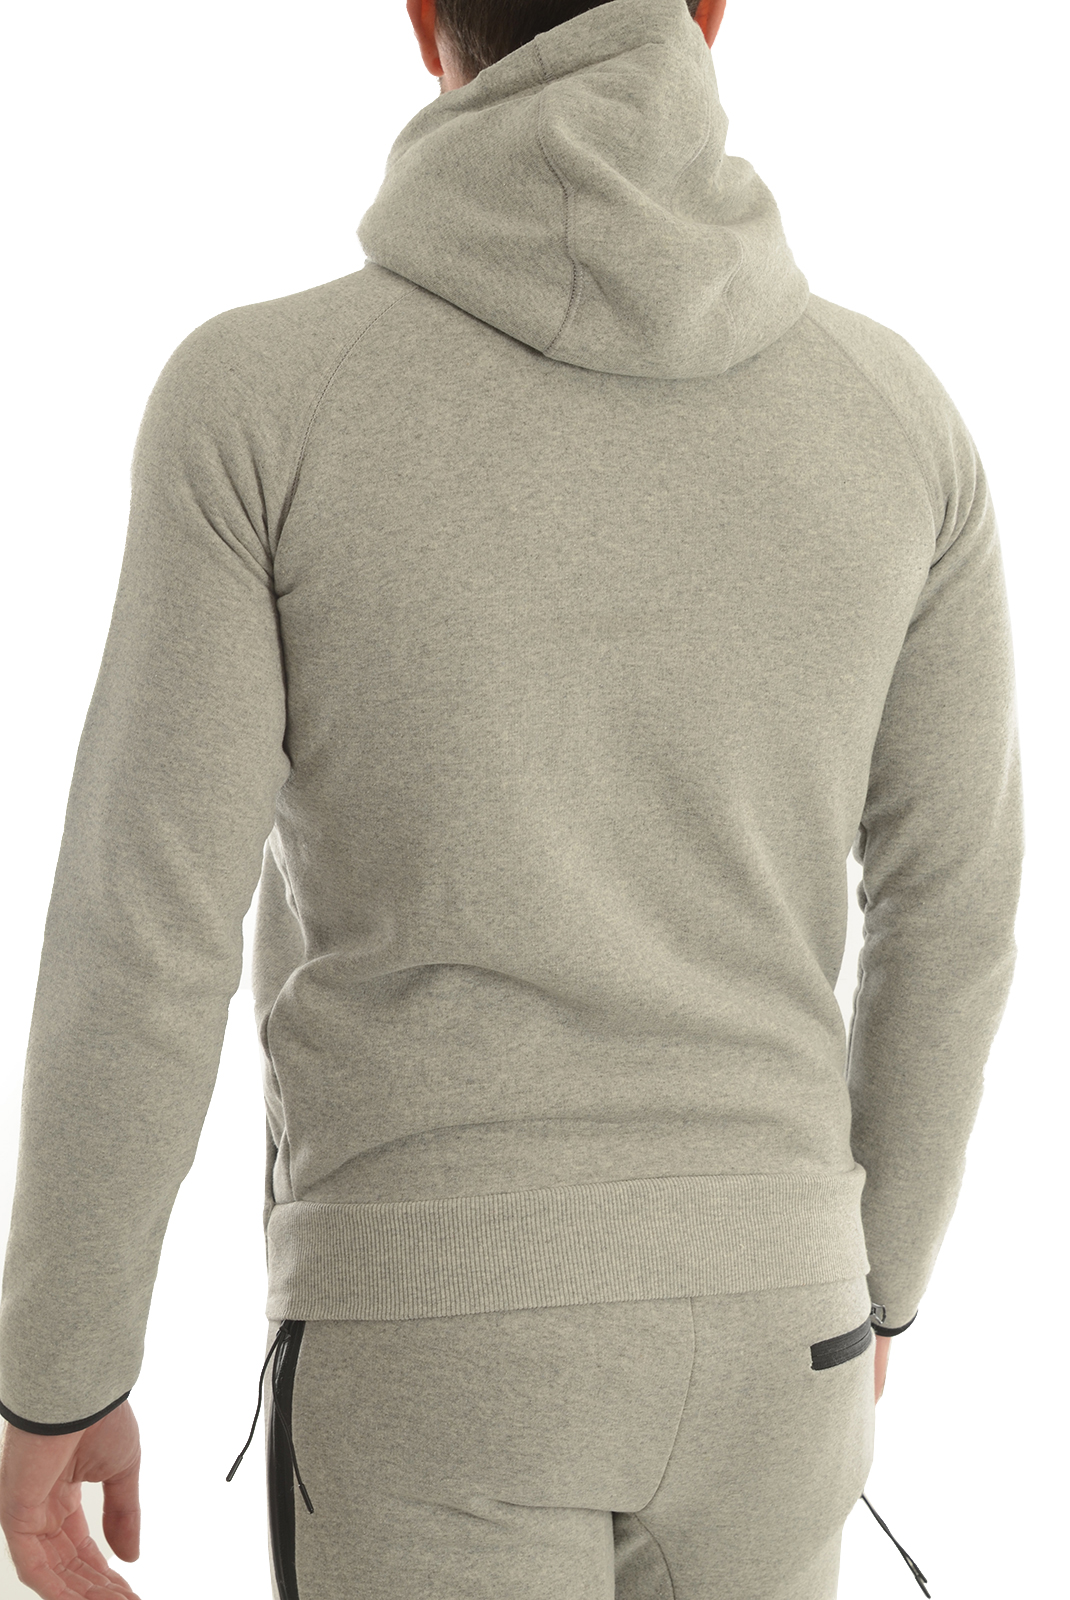 Survêtements  Apologize DNL010 GRIS